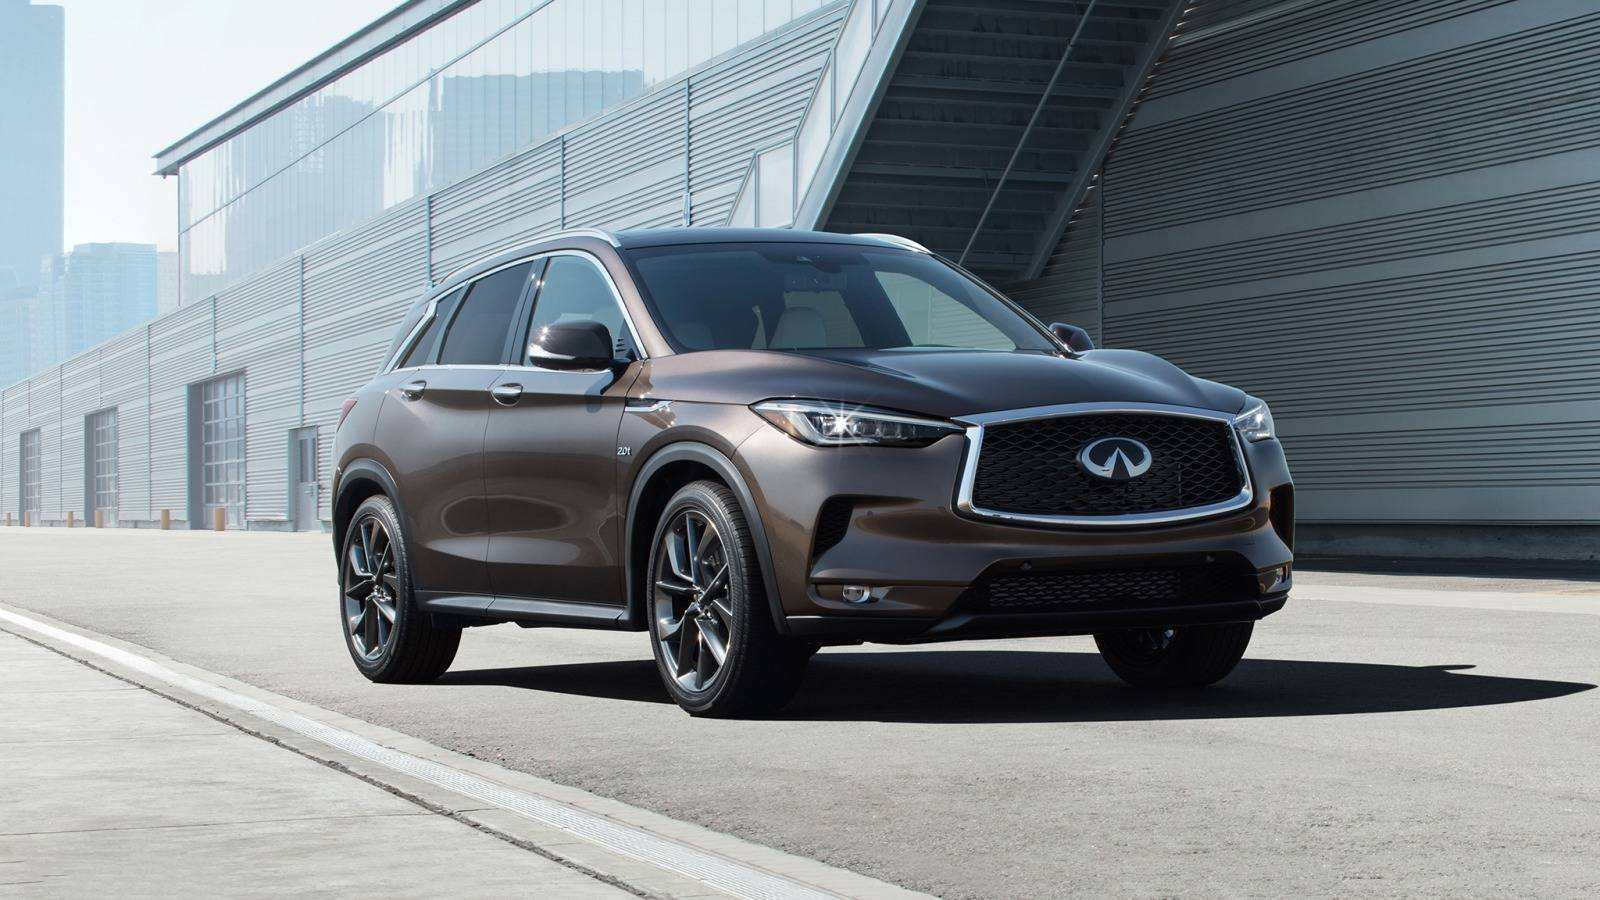 99 All New Best Infiniti Qx50 2019 Trunk Space Price History for Best Infiniti Qx50 2019 Trunk Space Price